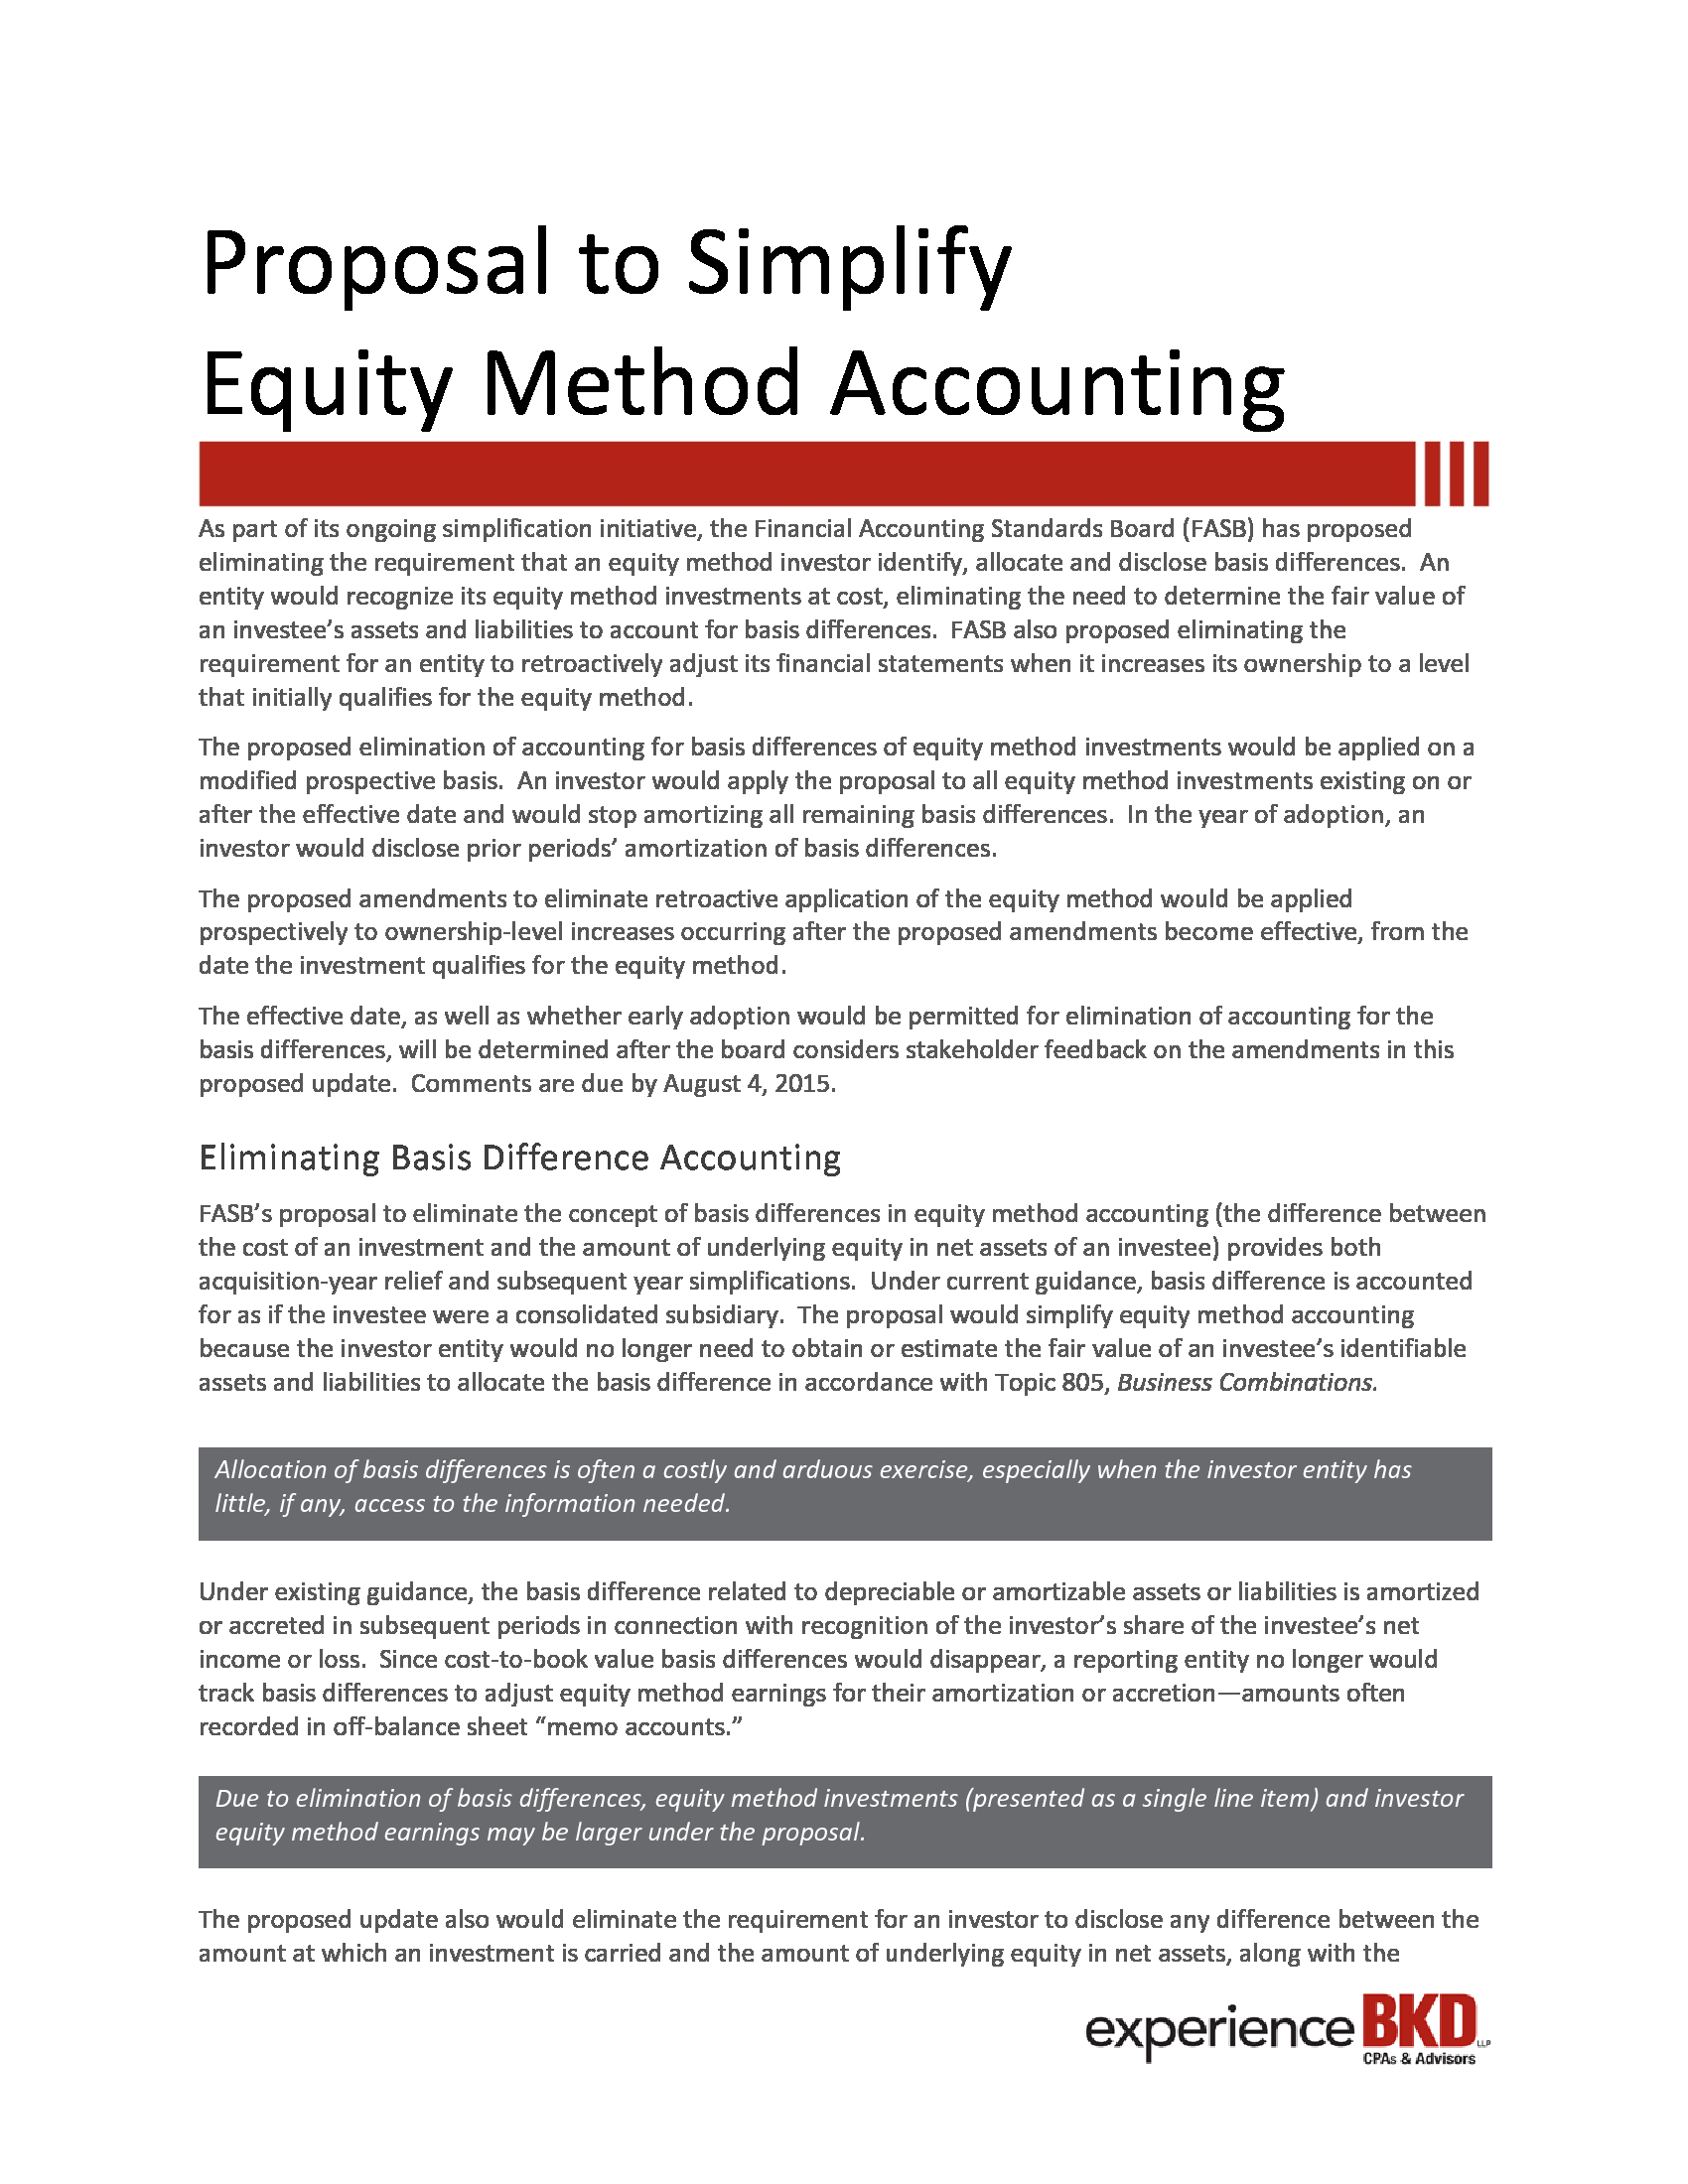 fasb simplification initiative equity method investment